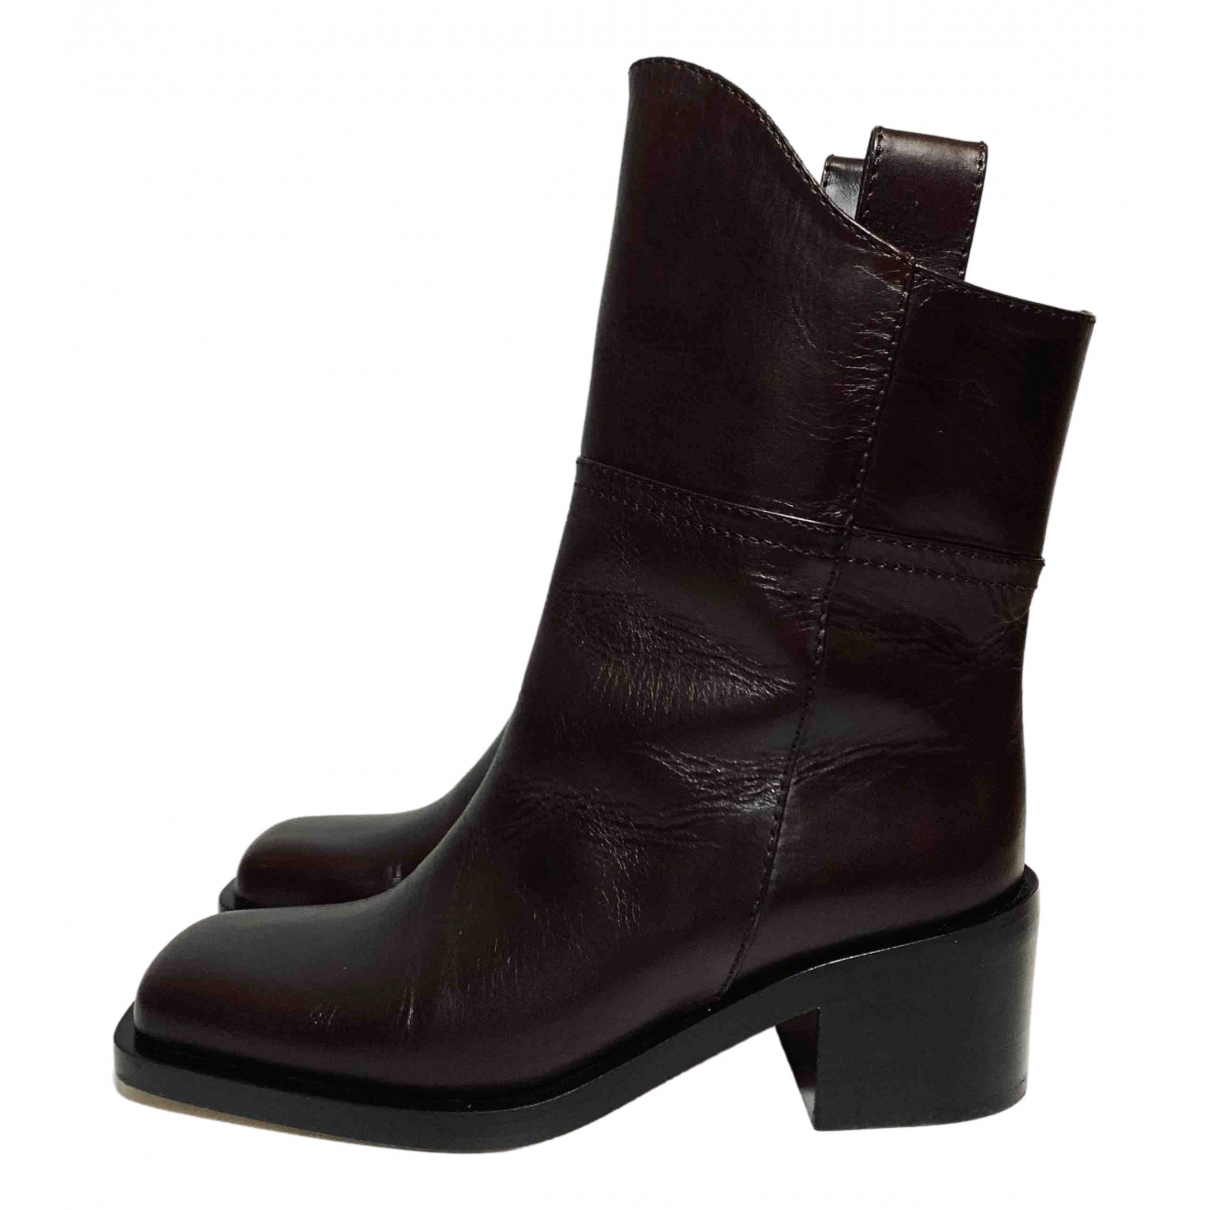 Chanel \N Brown Leather Boots for Women 36.5 EU